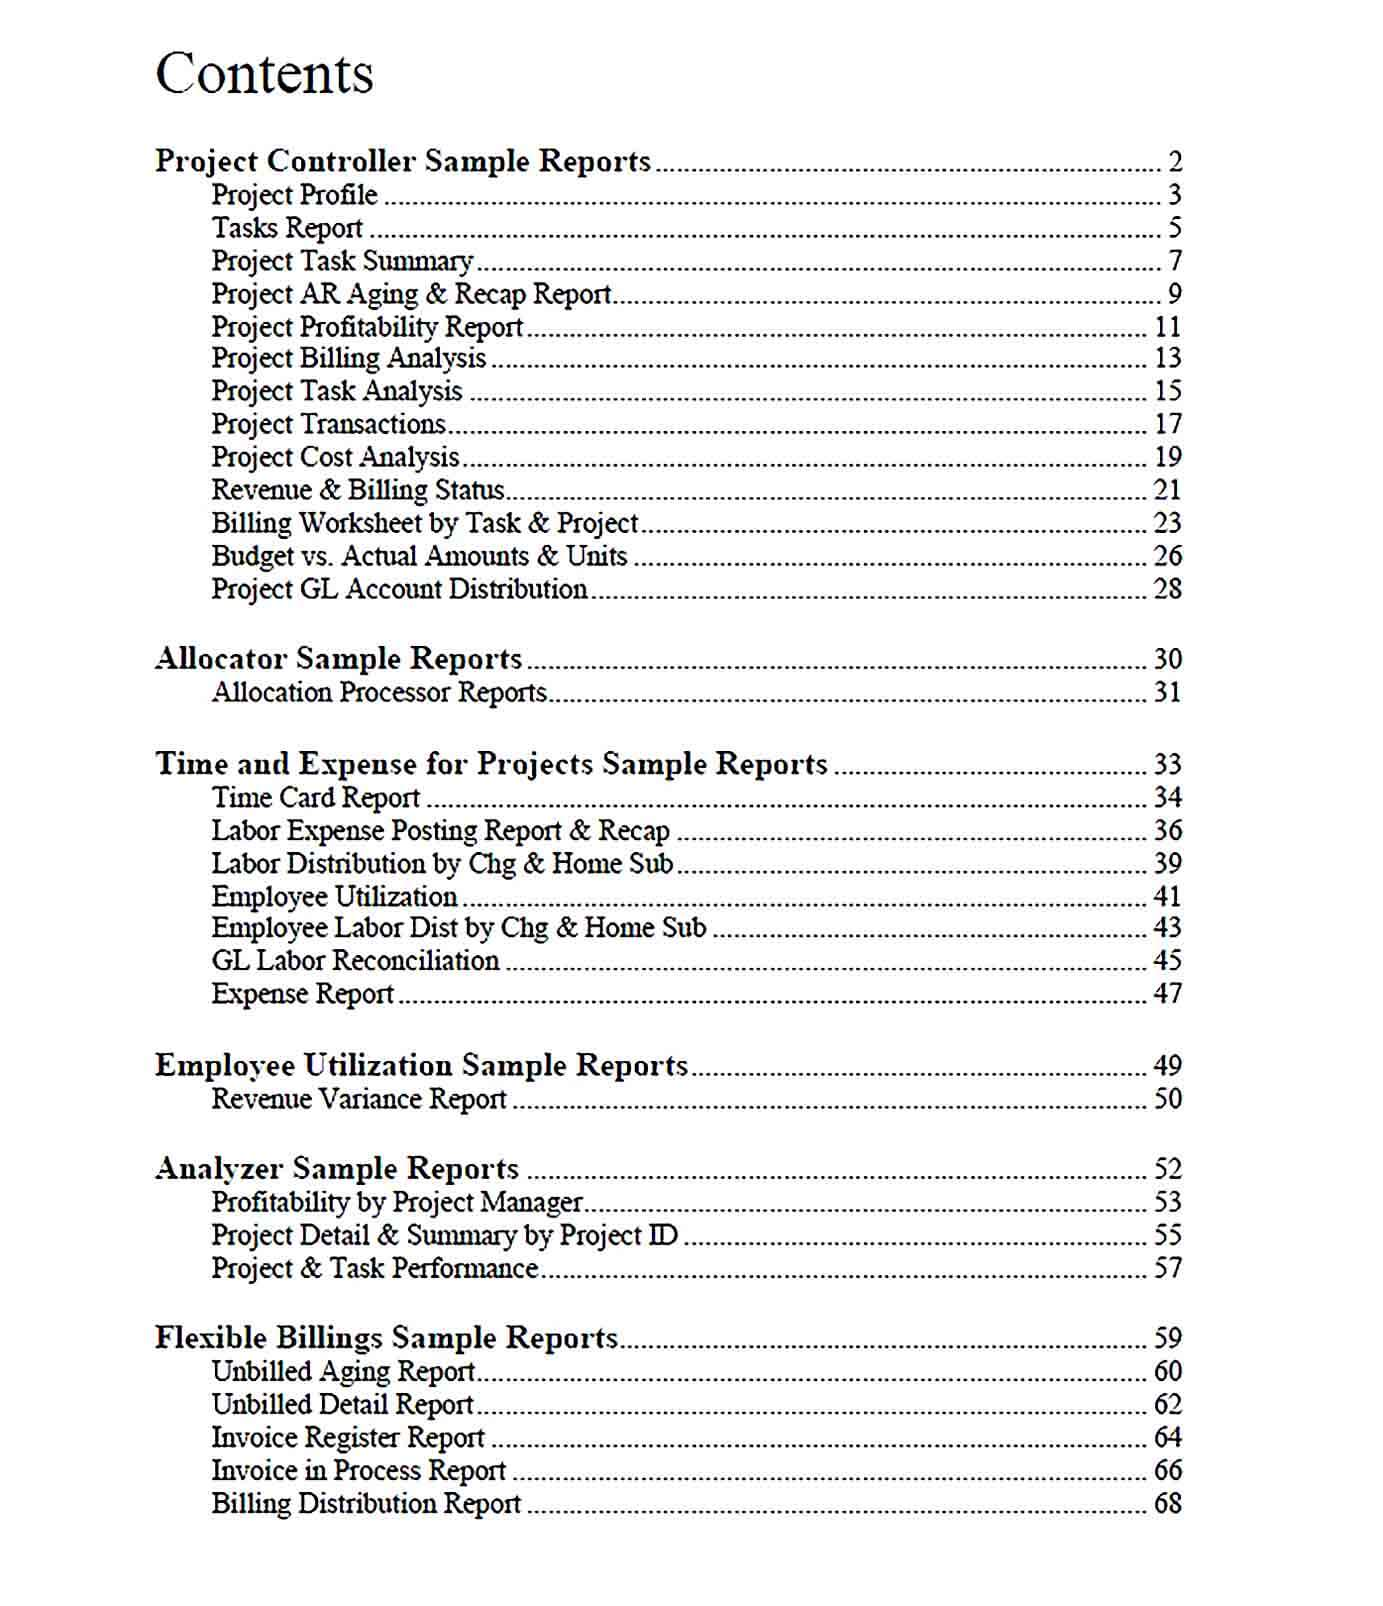 Sample Management Report for Project Accounting